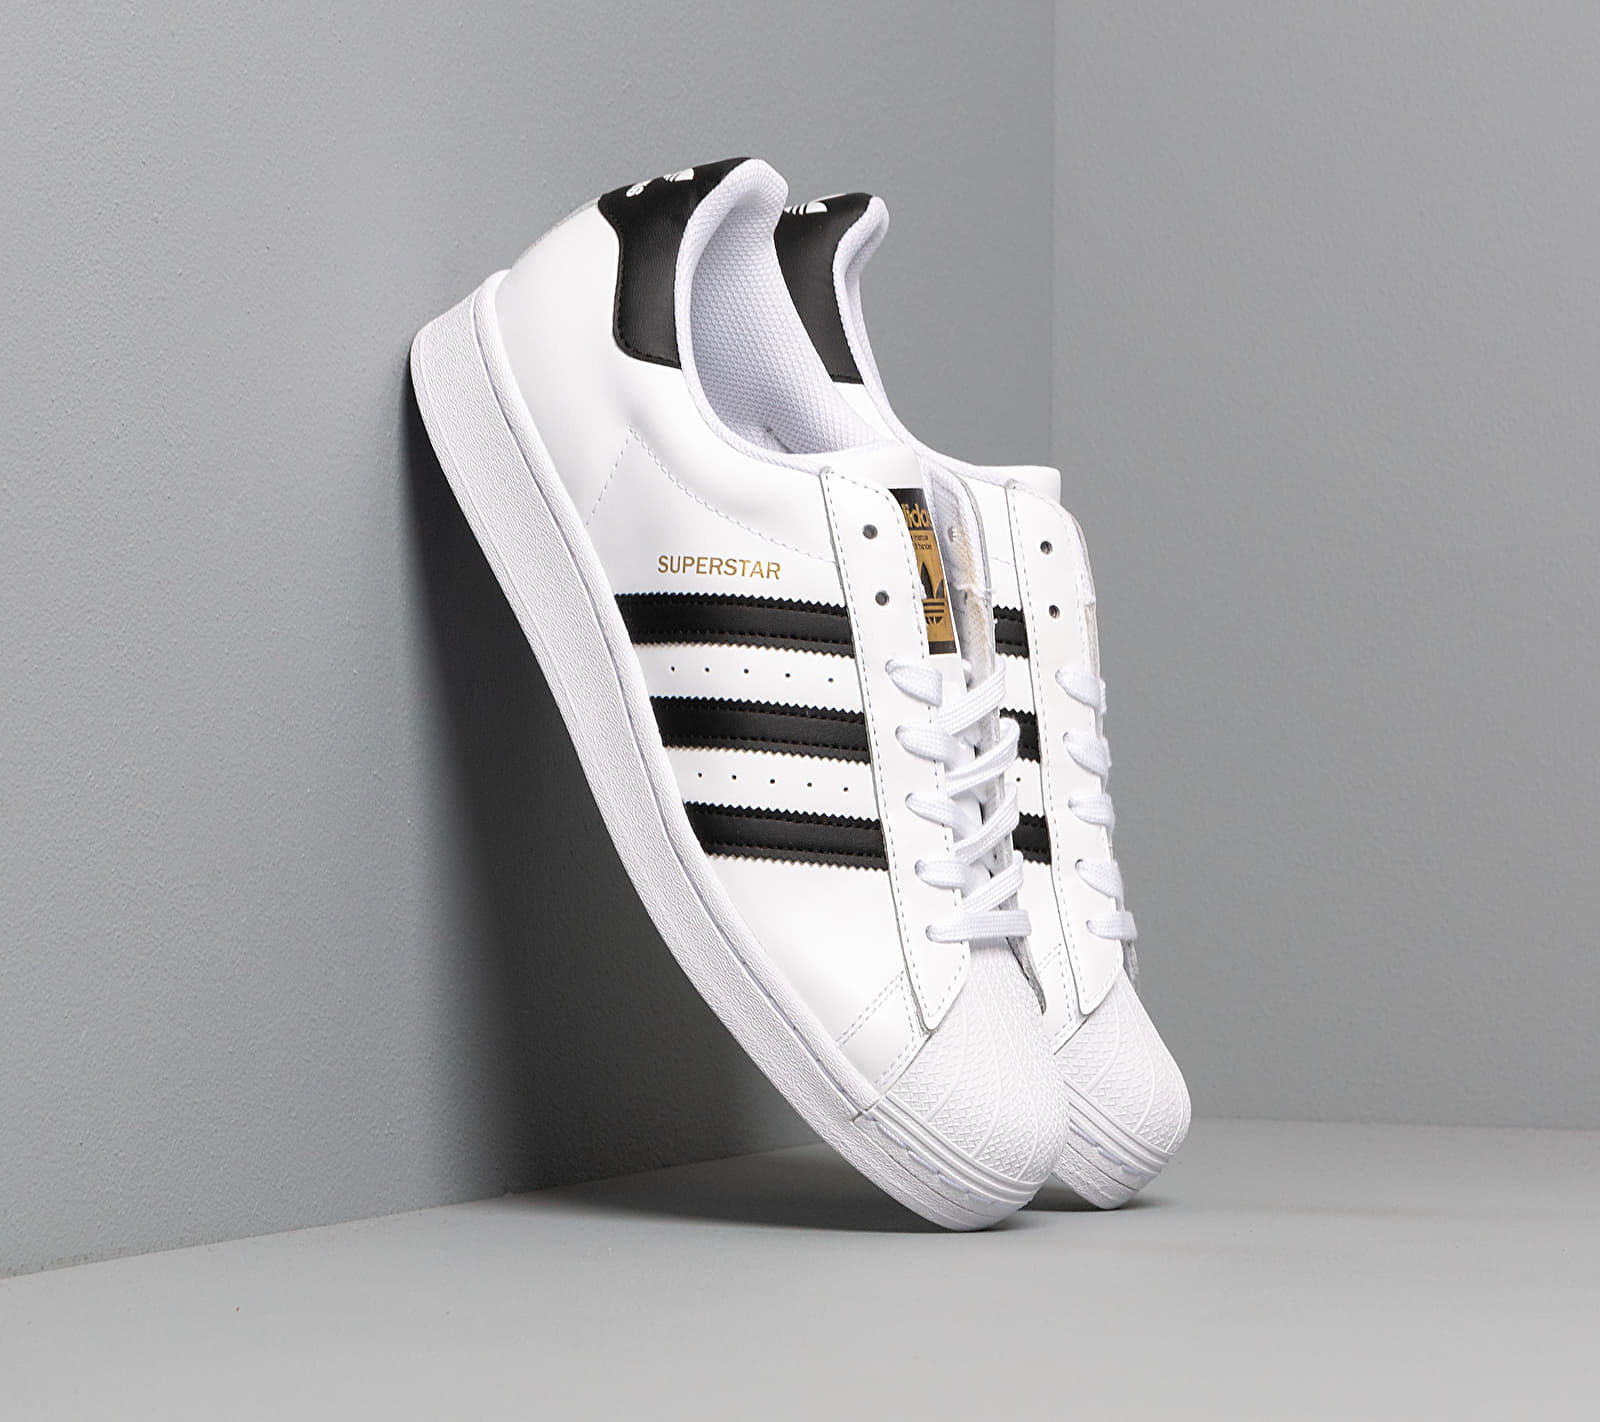 adidas Superstar Ftw White/ Core Black/ Ftw White EUR 41 1/3